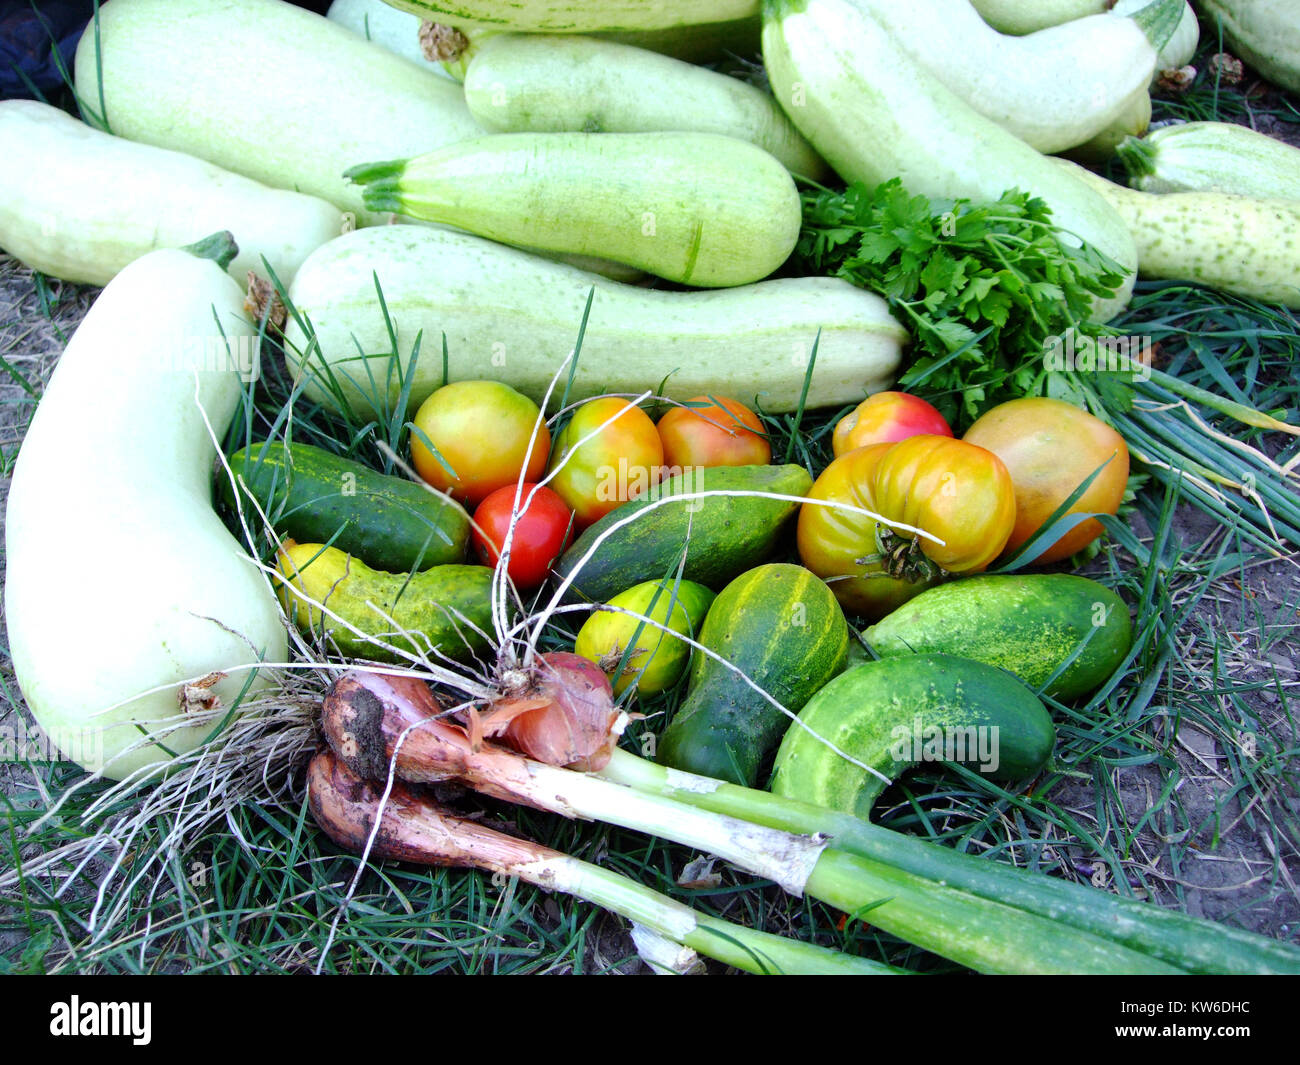 Vegetables from the garden - cucumder, tomato, bows, zucchini. - Stock Image